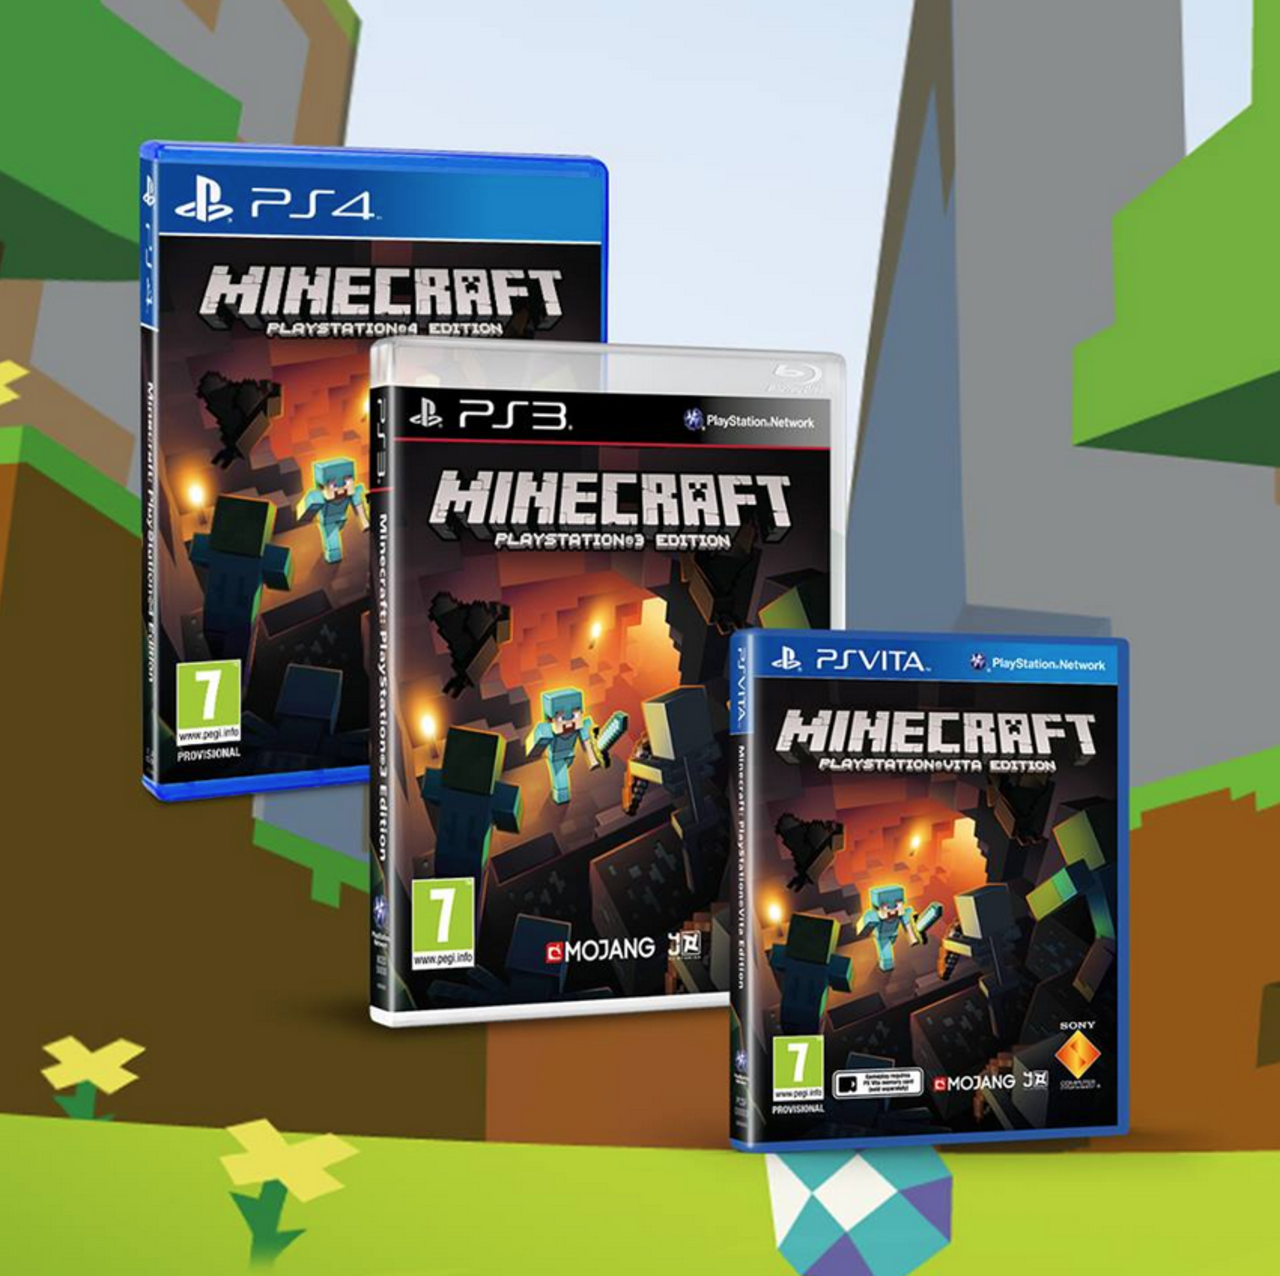 Minecraft Ps3 Edition Getting Disc Release Next Month Has Lovely Box Art Minecraft Video Games Ps4 Minecraft Ps4